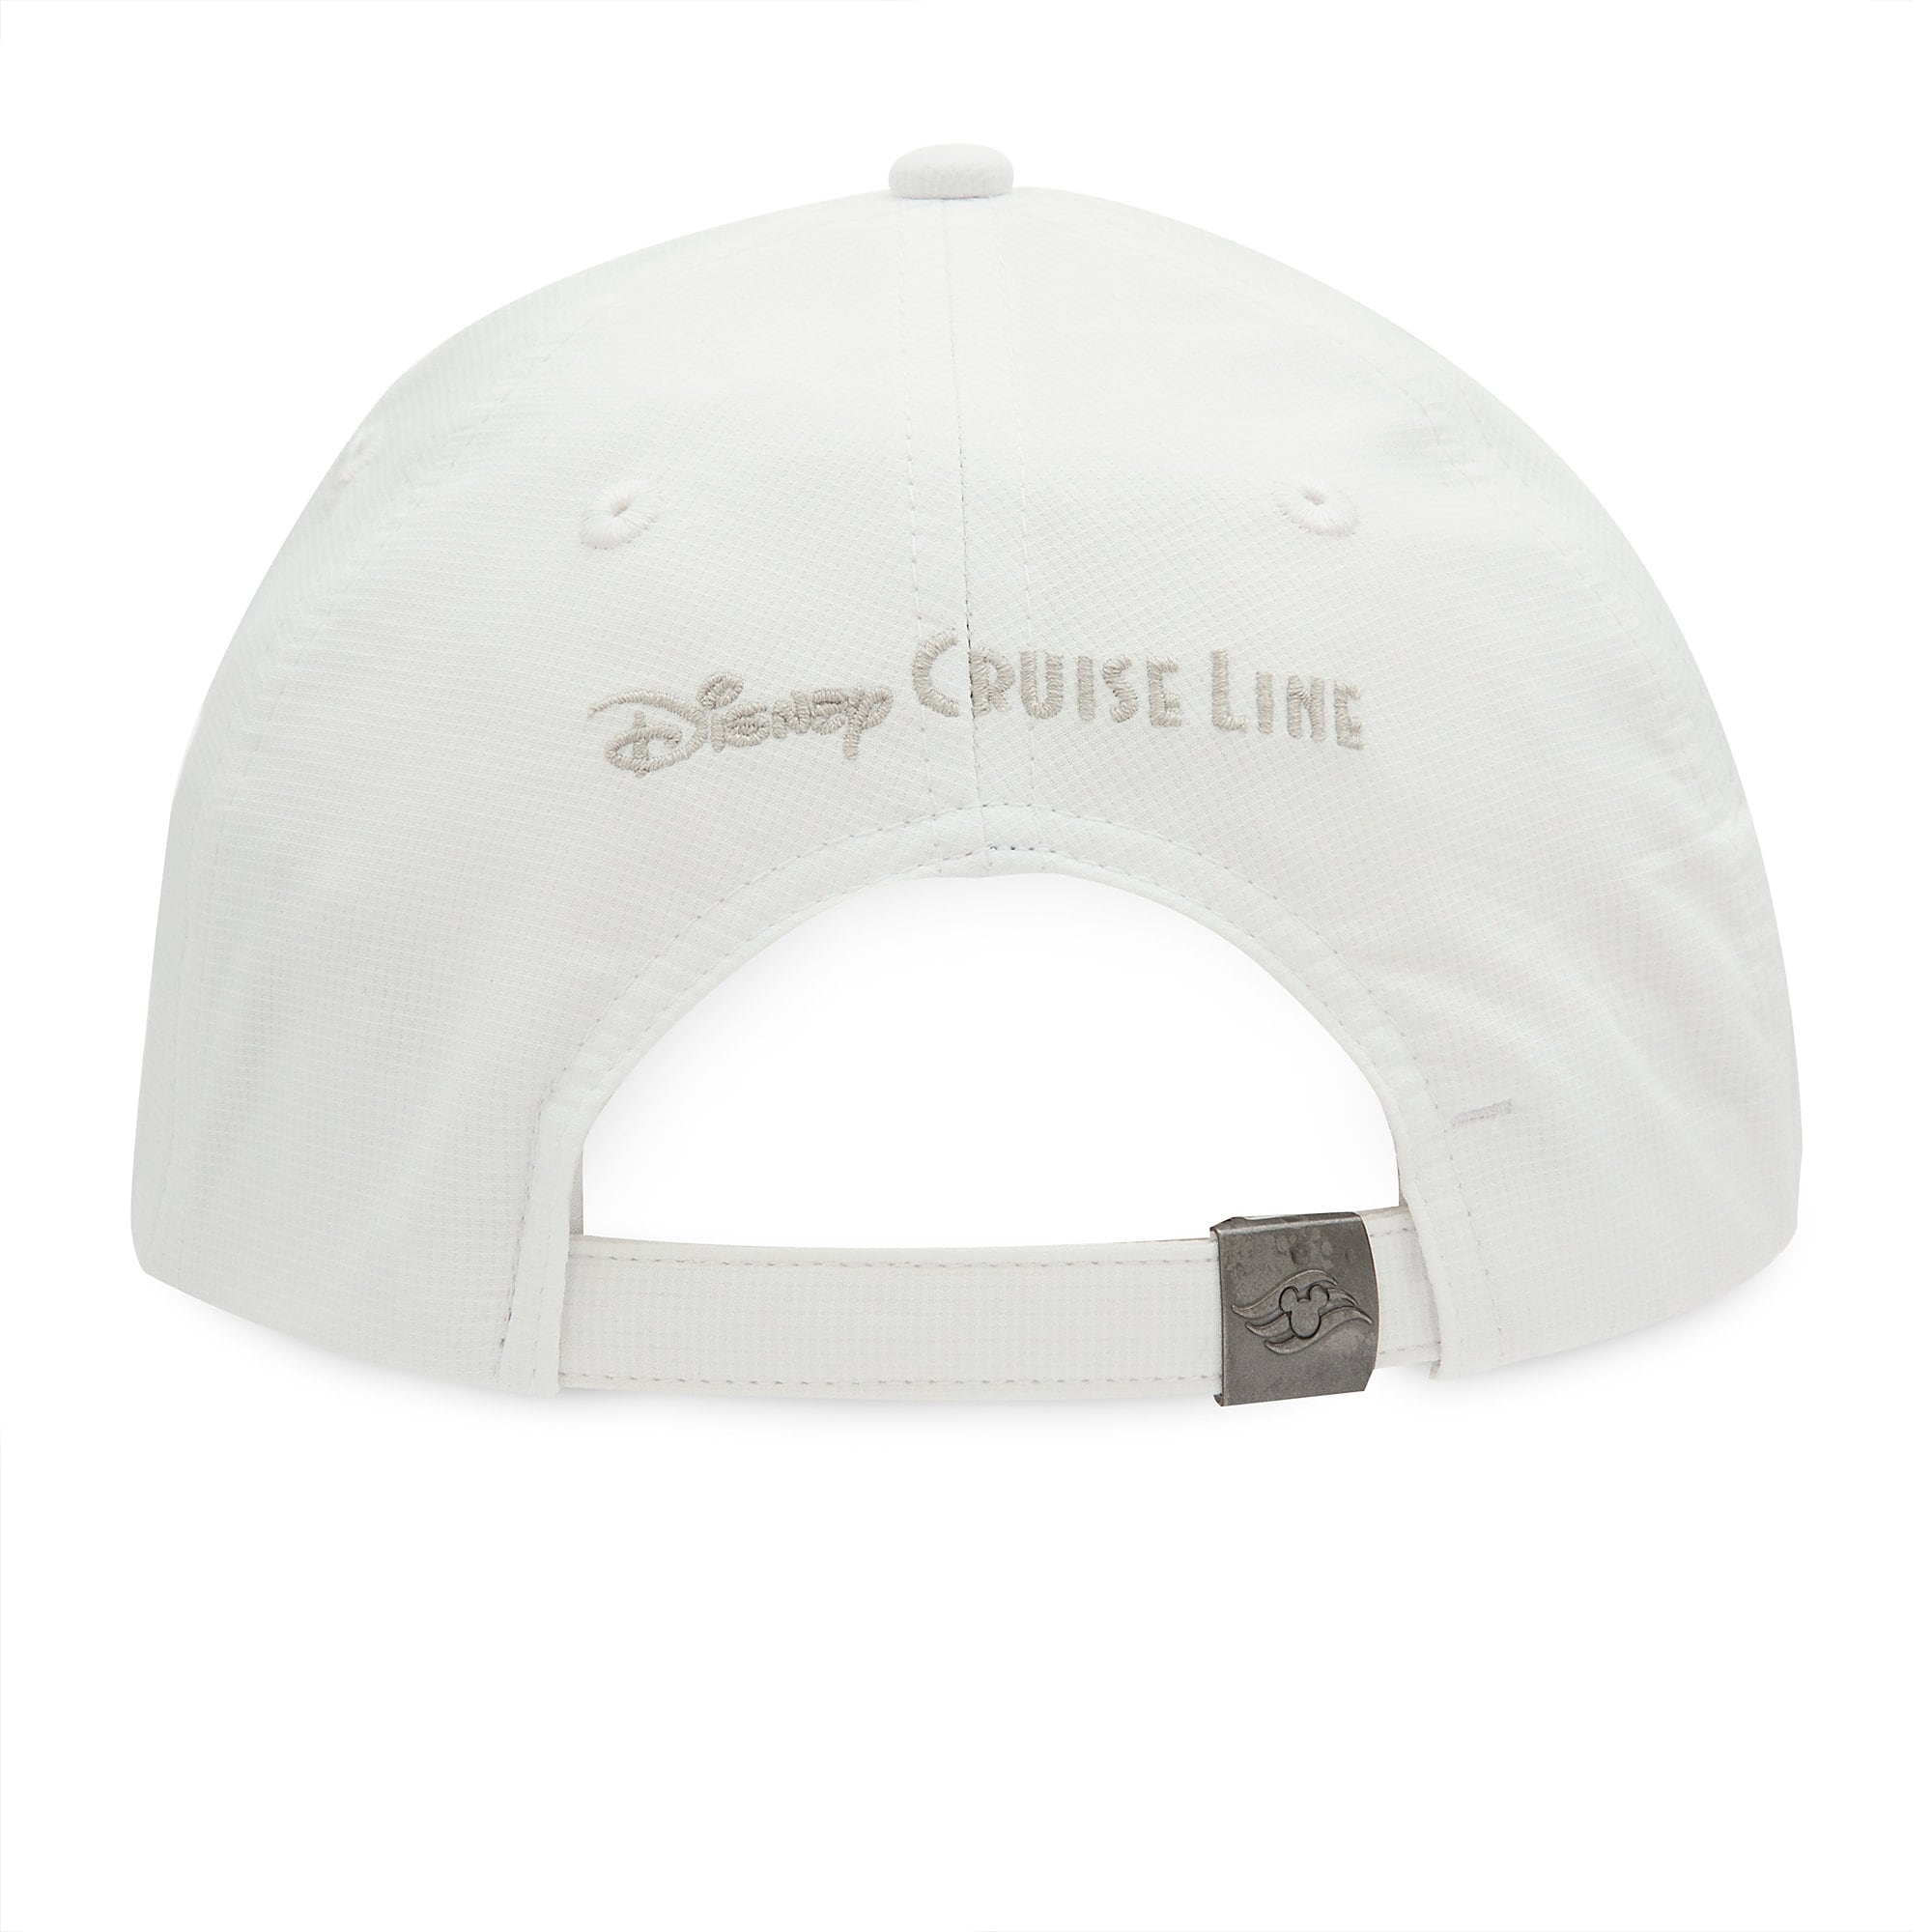 promo code e22c5 8affc ... aliexpress disney cruise line baseball hat for adults white 37c3d a1c32